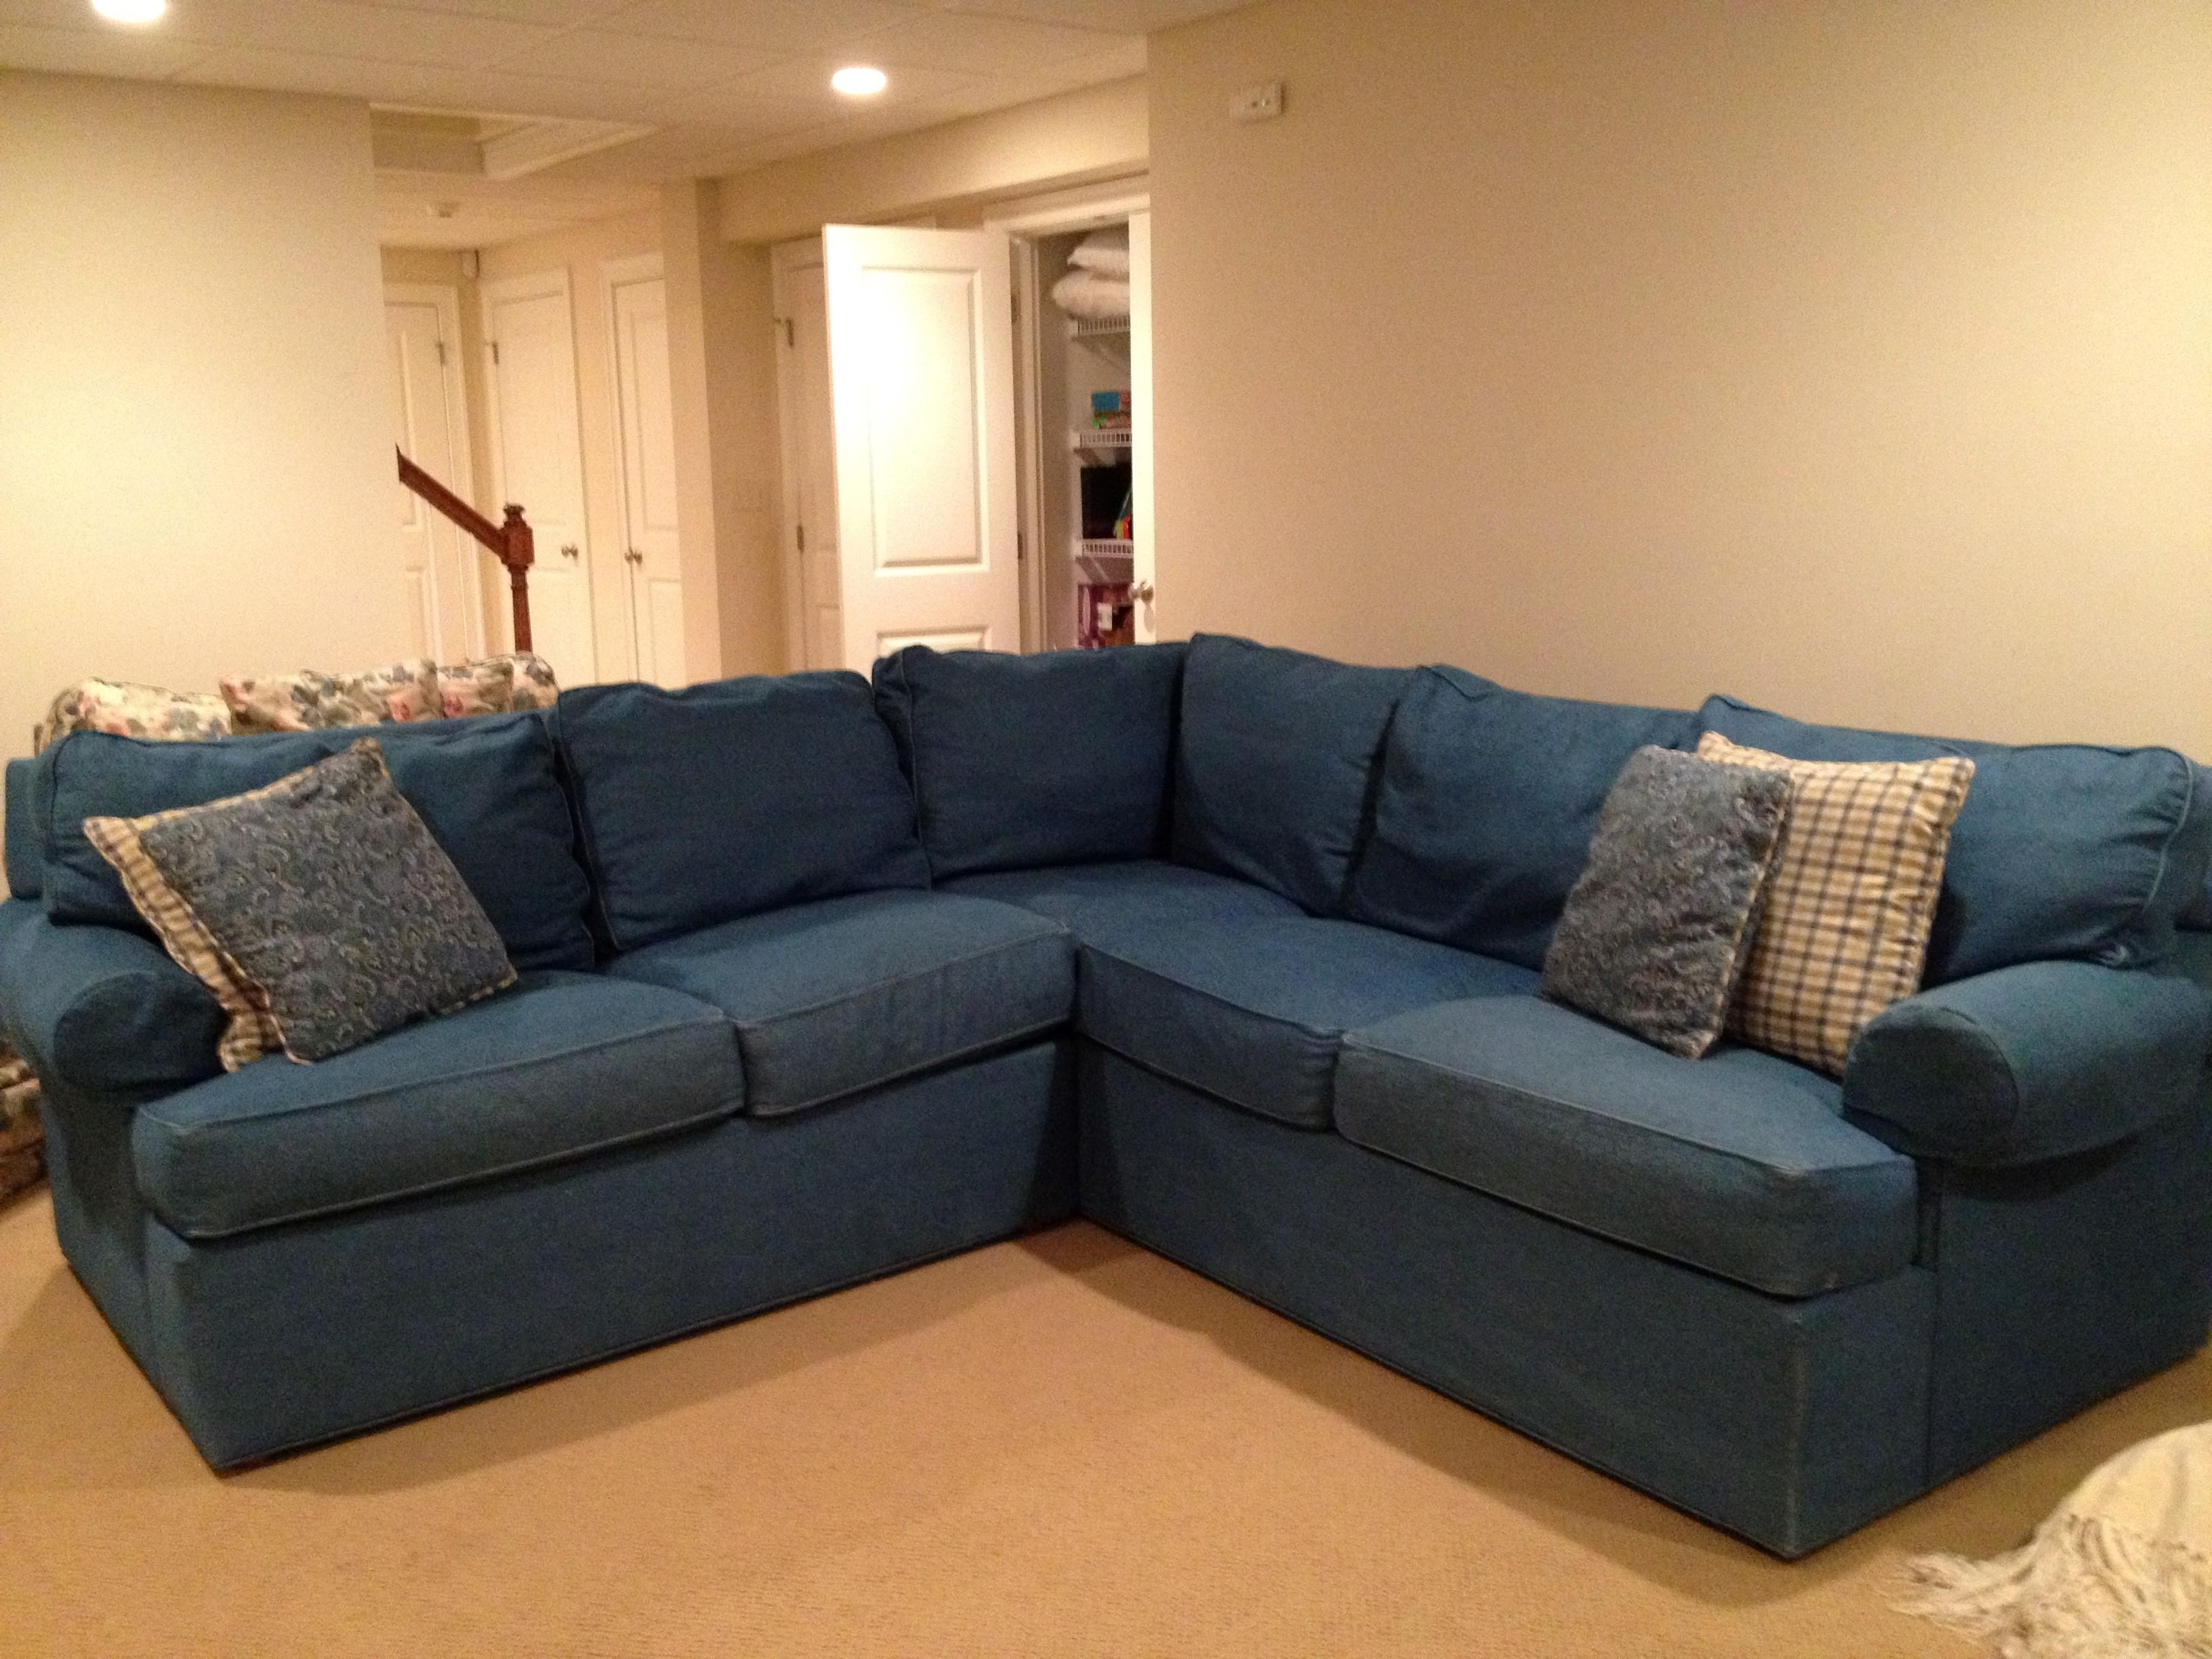 Sectional Sofa Craigslist With Ideas Design 30949 | Kengire For Craigslist Sectional (View 7 of 15)